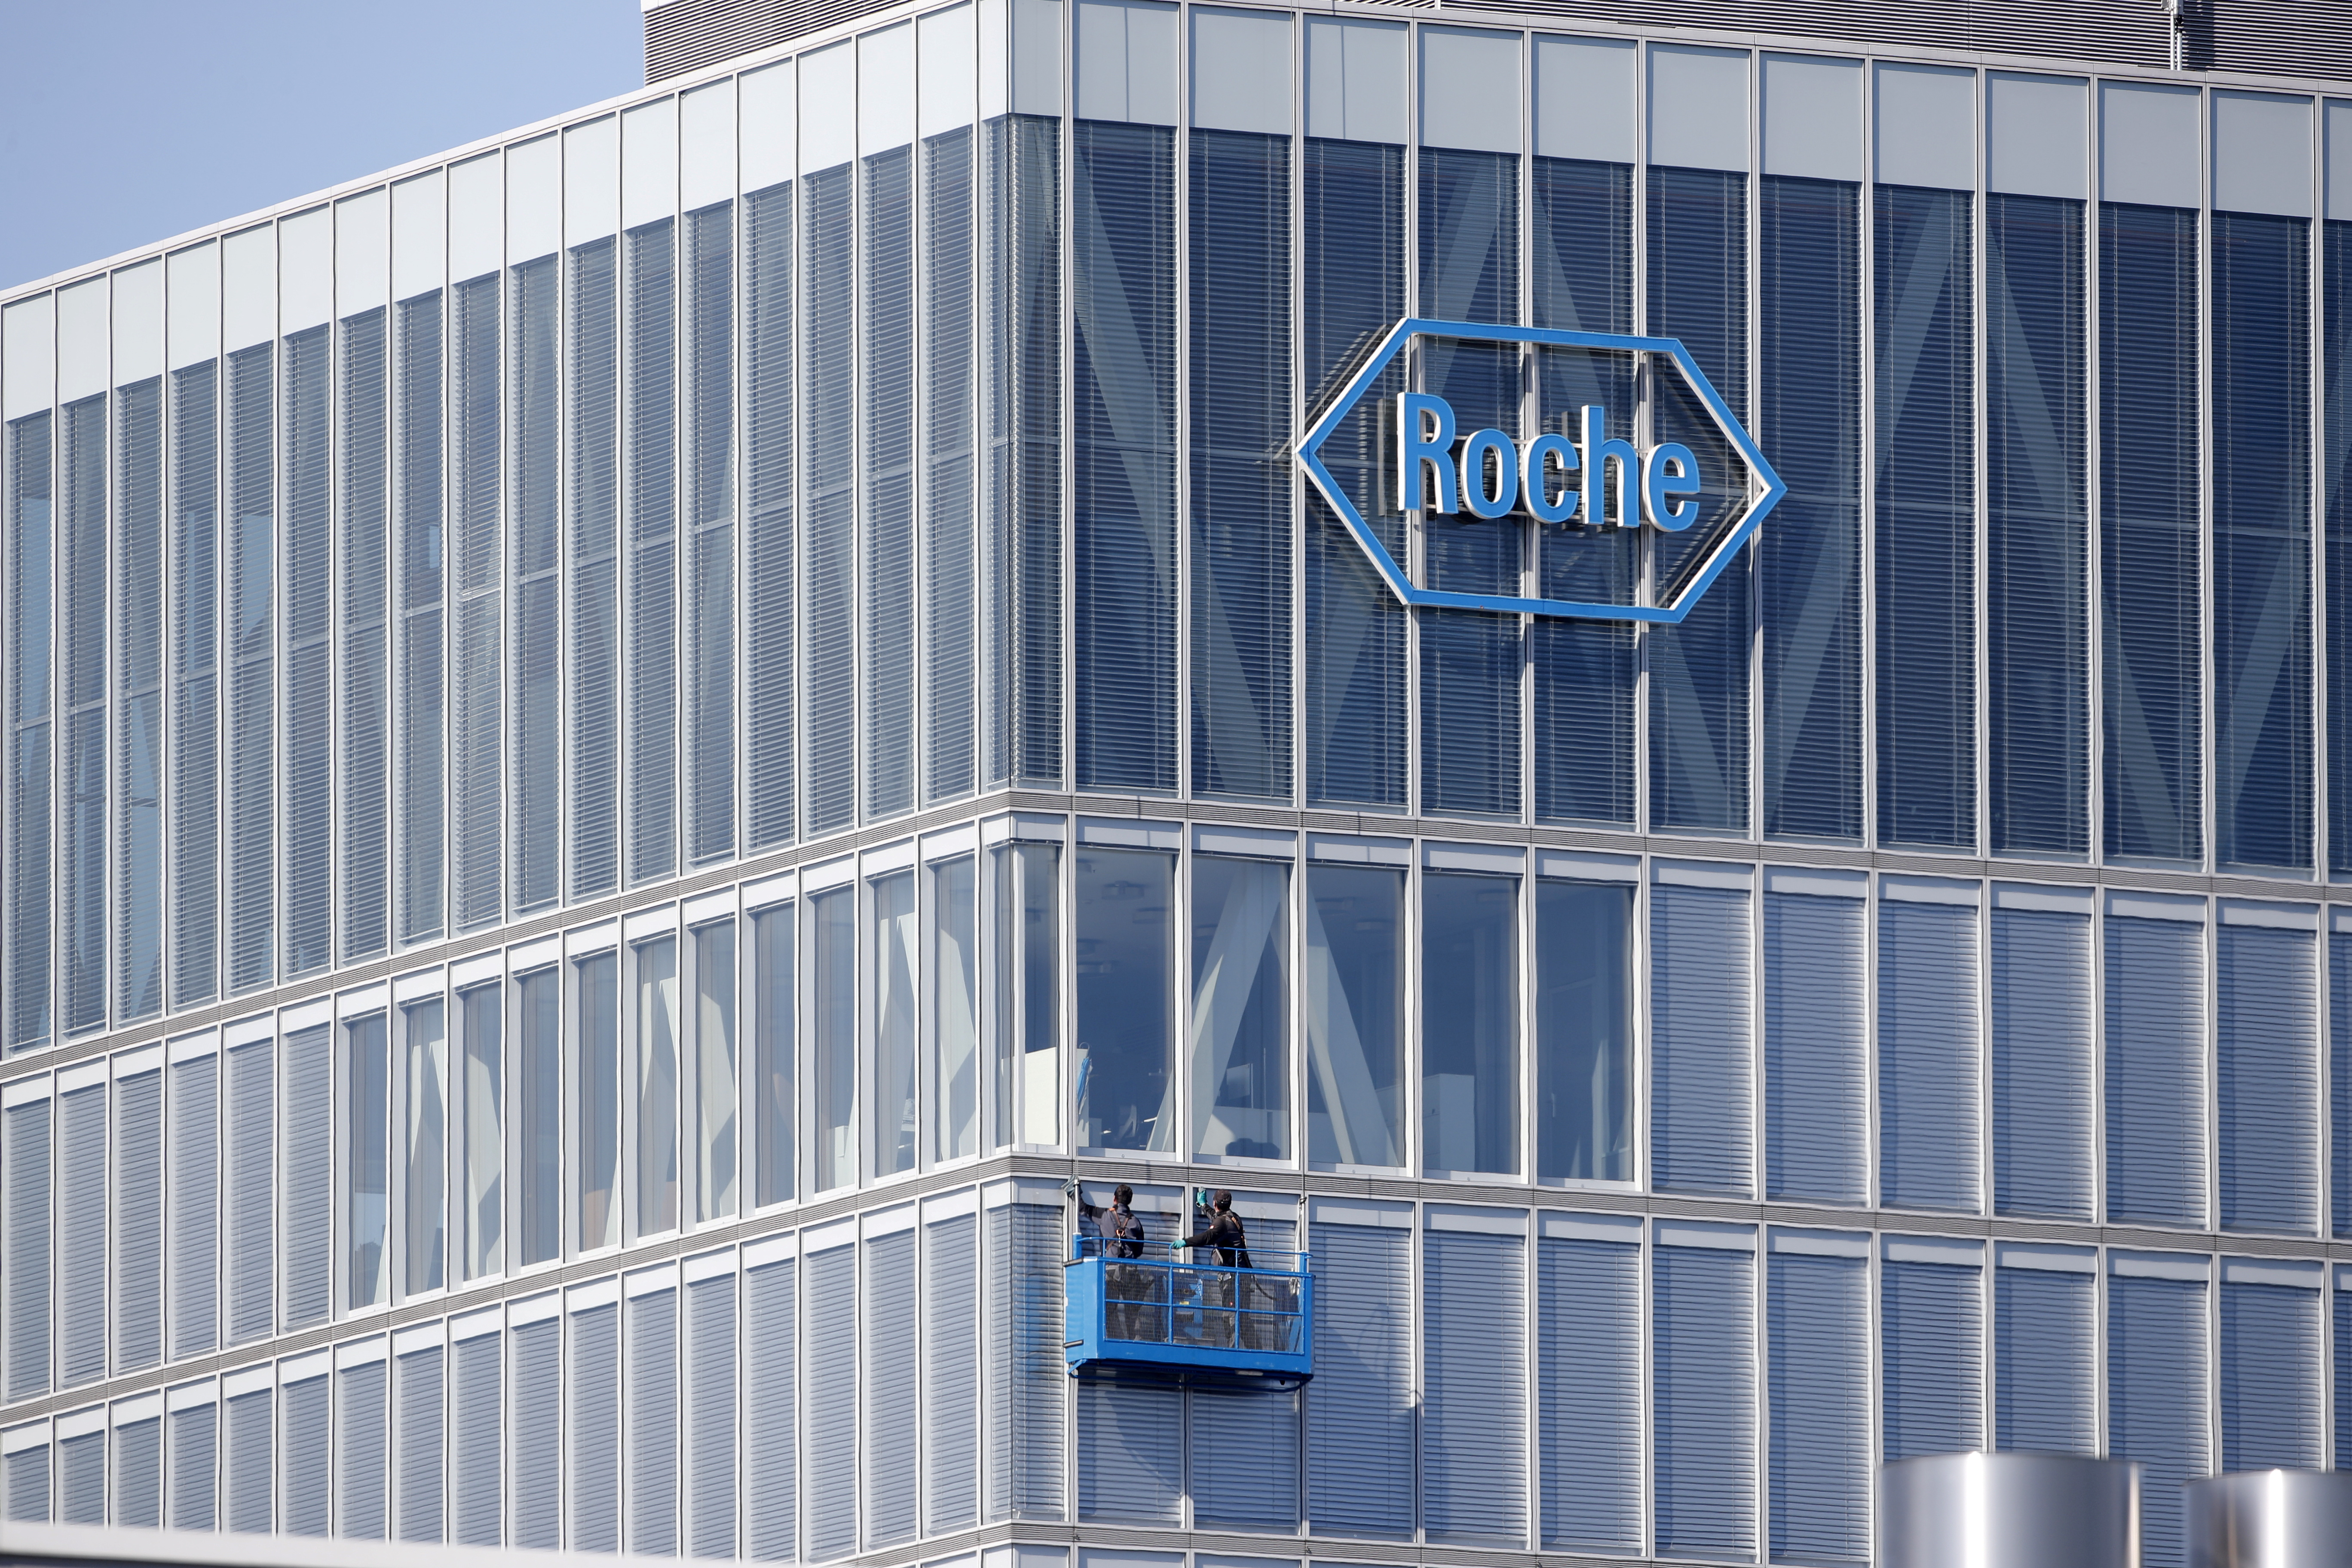 Workers clean the windows of a building of Roche in Rotkreuz May 27, 2020. REUTERS/Arnd Wiegmann/File Photo